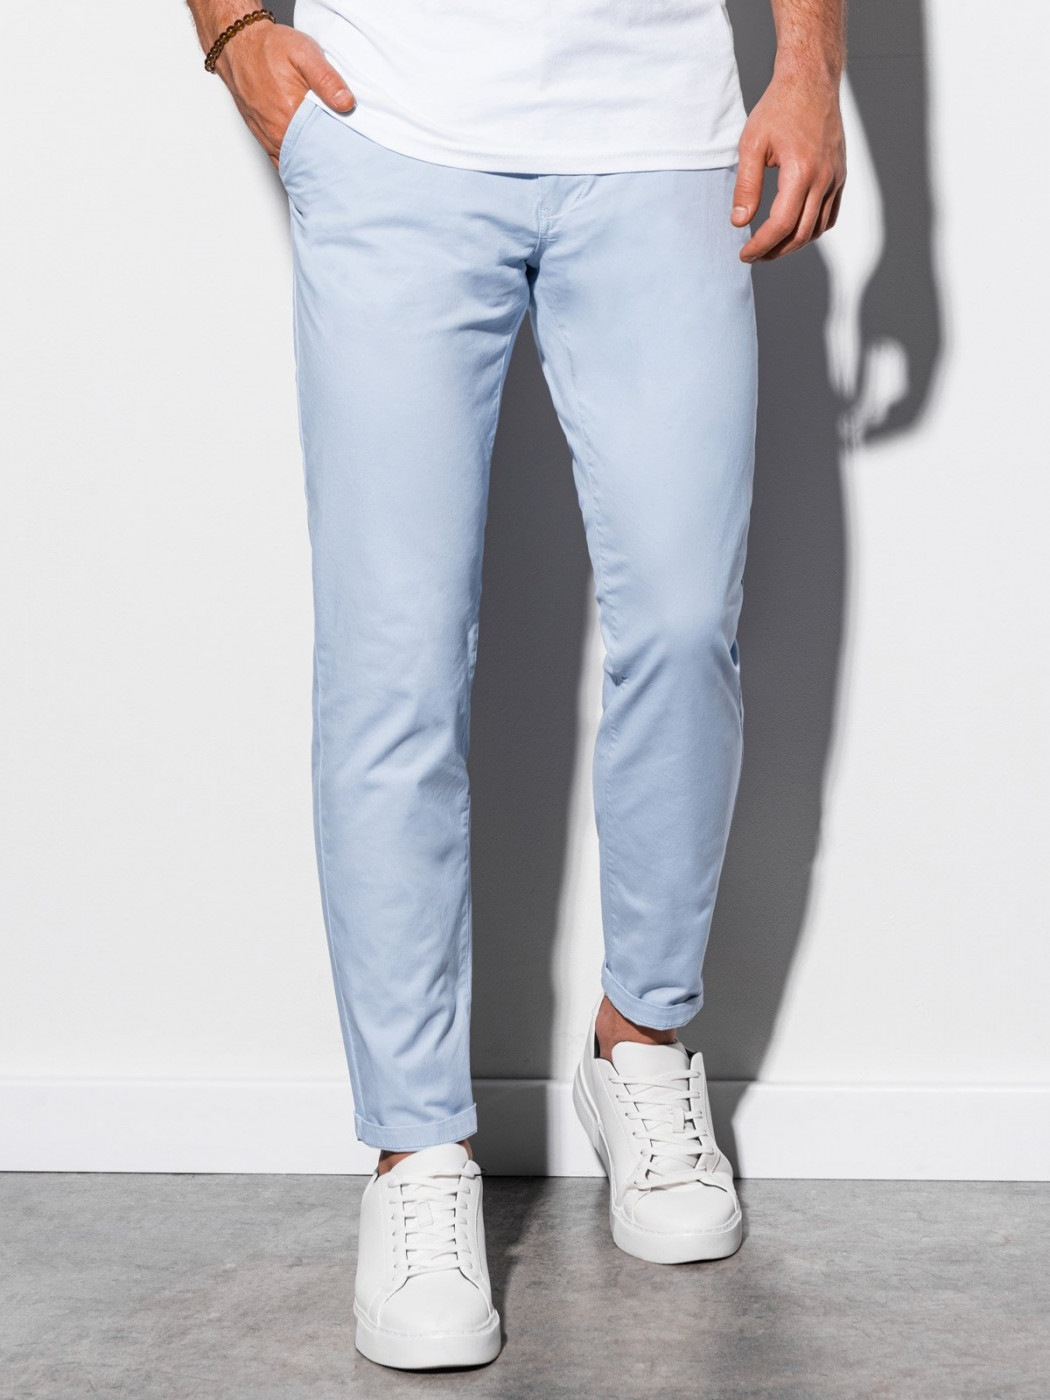 Ombre Clothing Men's pants chinos P894